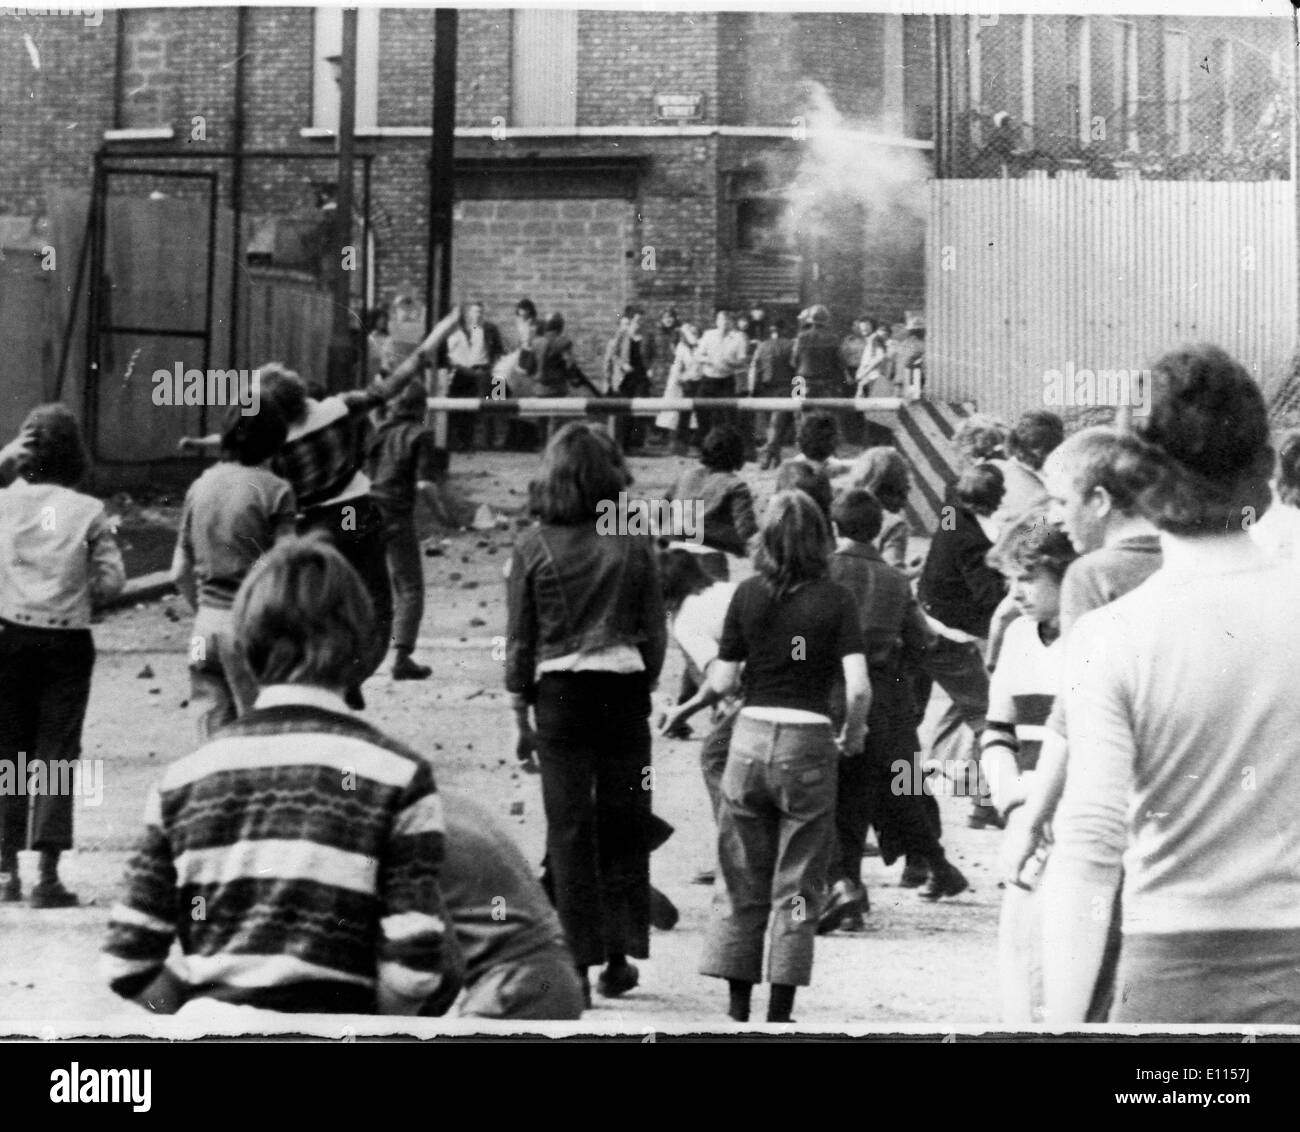 Aug 11, 1975; Belfast, Ireland; Catholics and Protestants throwing stones and petrol bombs during a battle across the 'Peace Line' in Belfast. - Stock Image